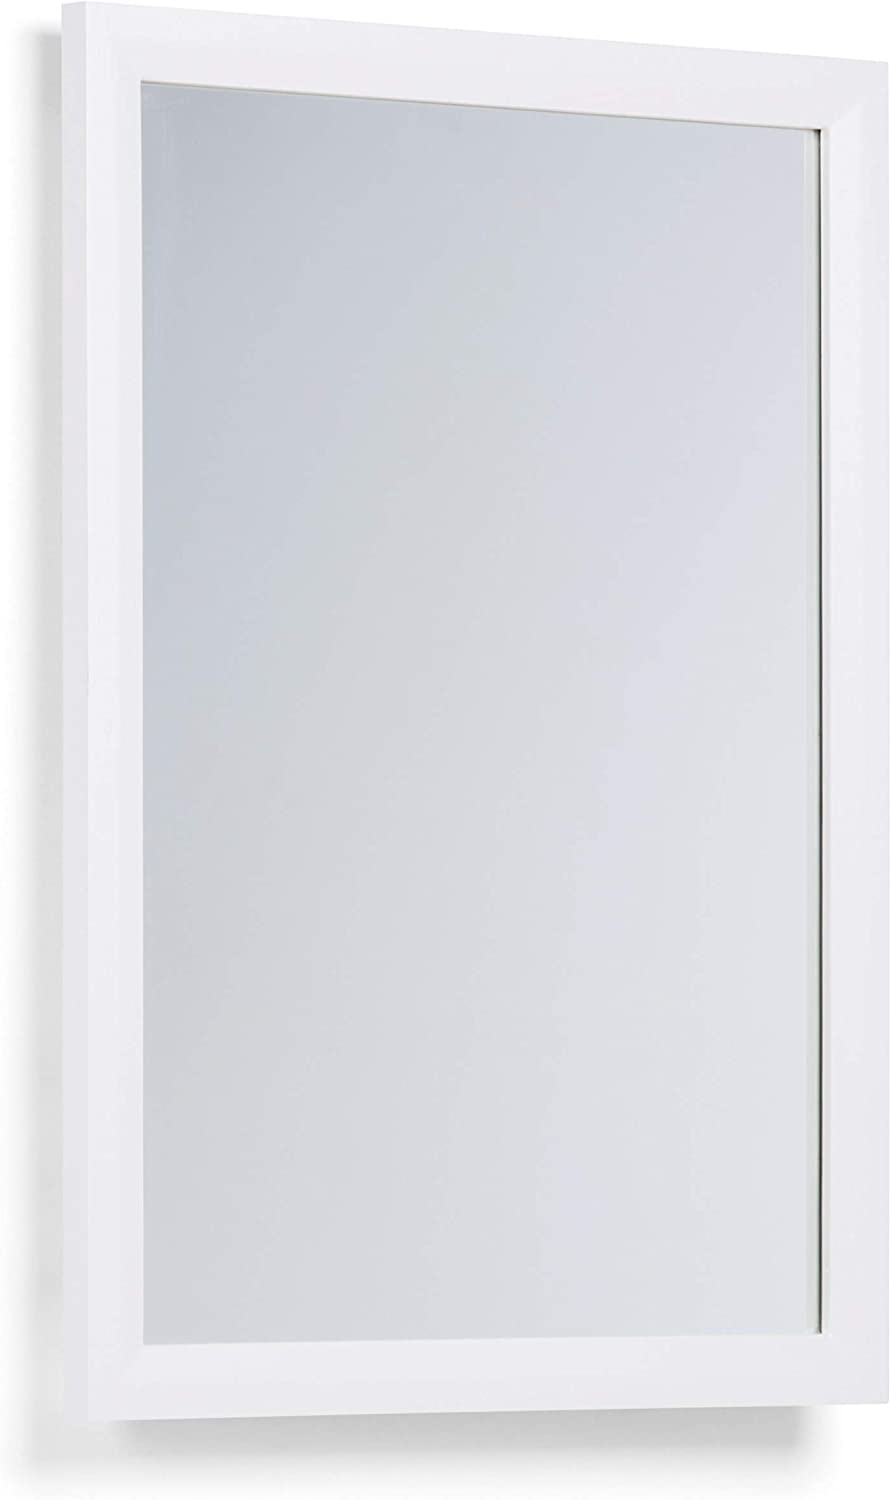 SIMPLIHOME Urban Loft 22 inch x 30 inch Bath Vanity Décor Mirror in Pure White